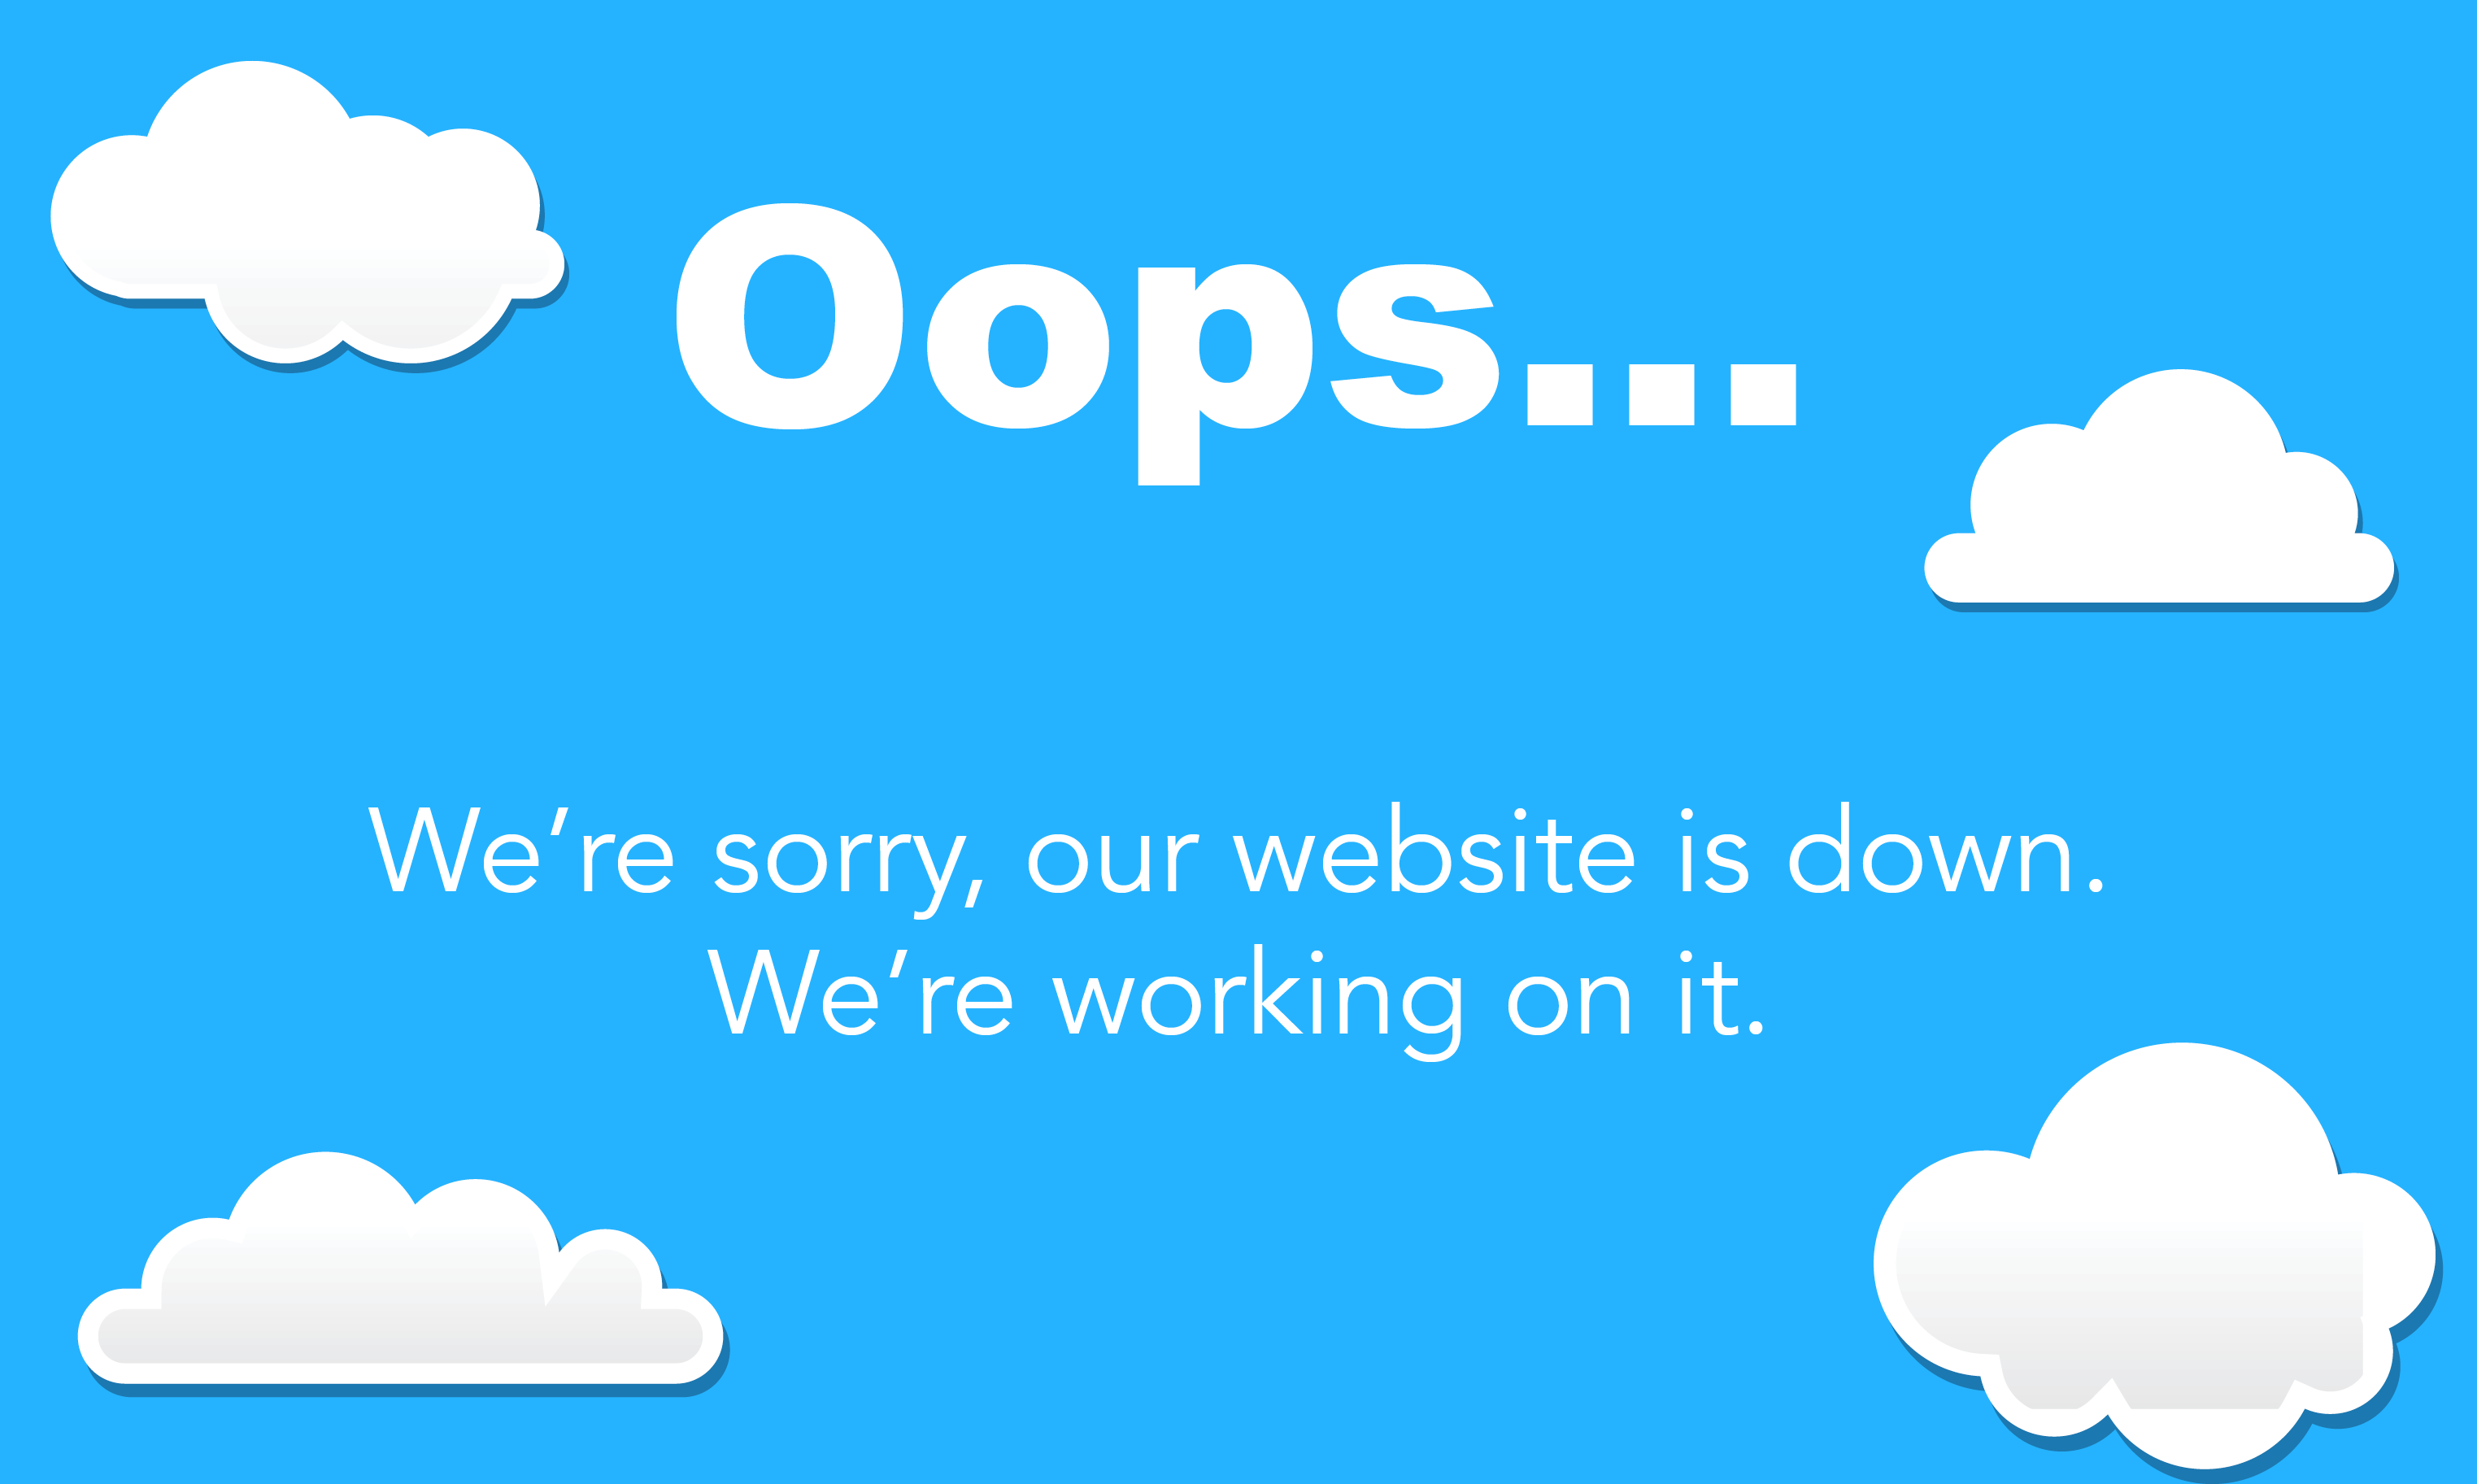 How To Checking Website Down Or Up